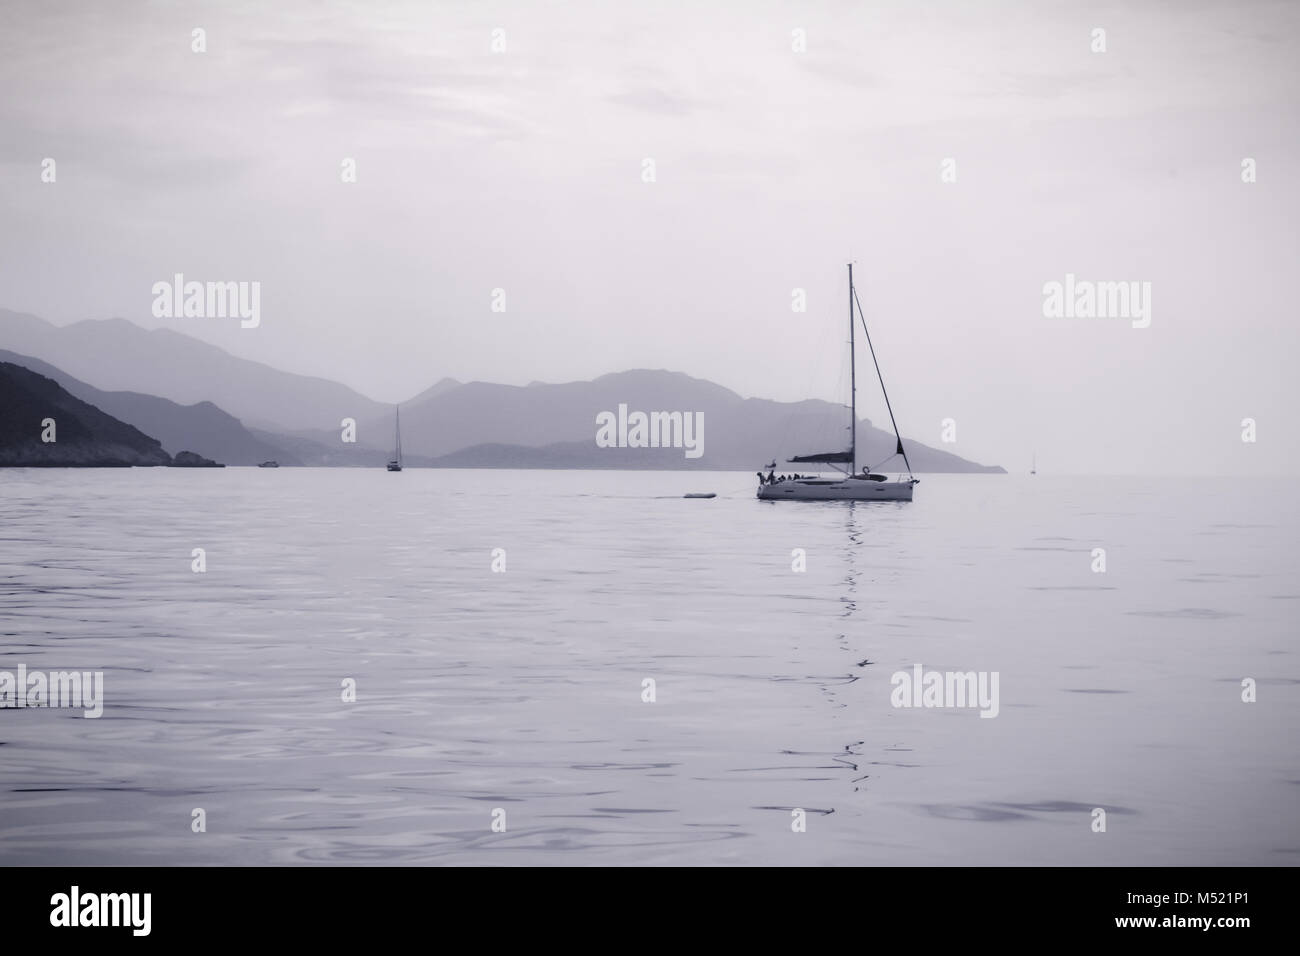 Sailing in calm seas with mountains in the distance in monotone dark grey to whiteout.  The mountains of Greece - Stock Image